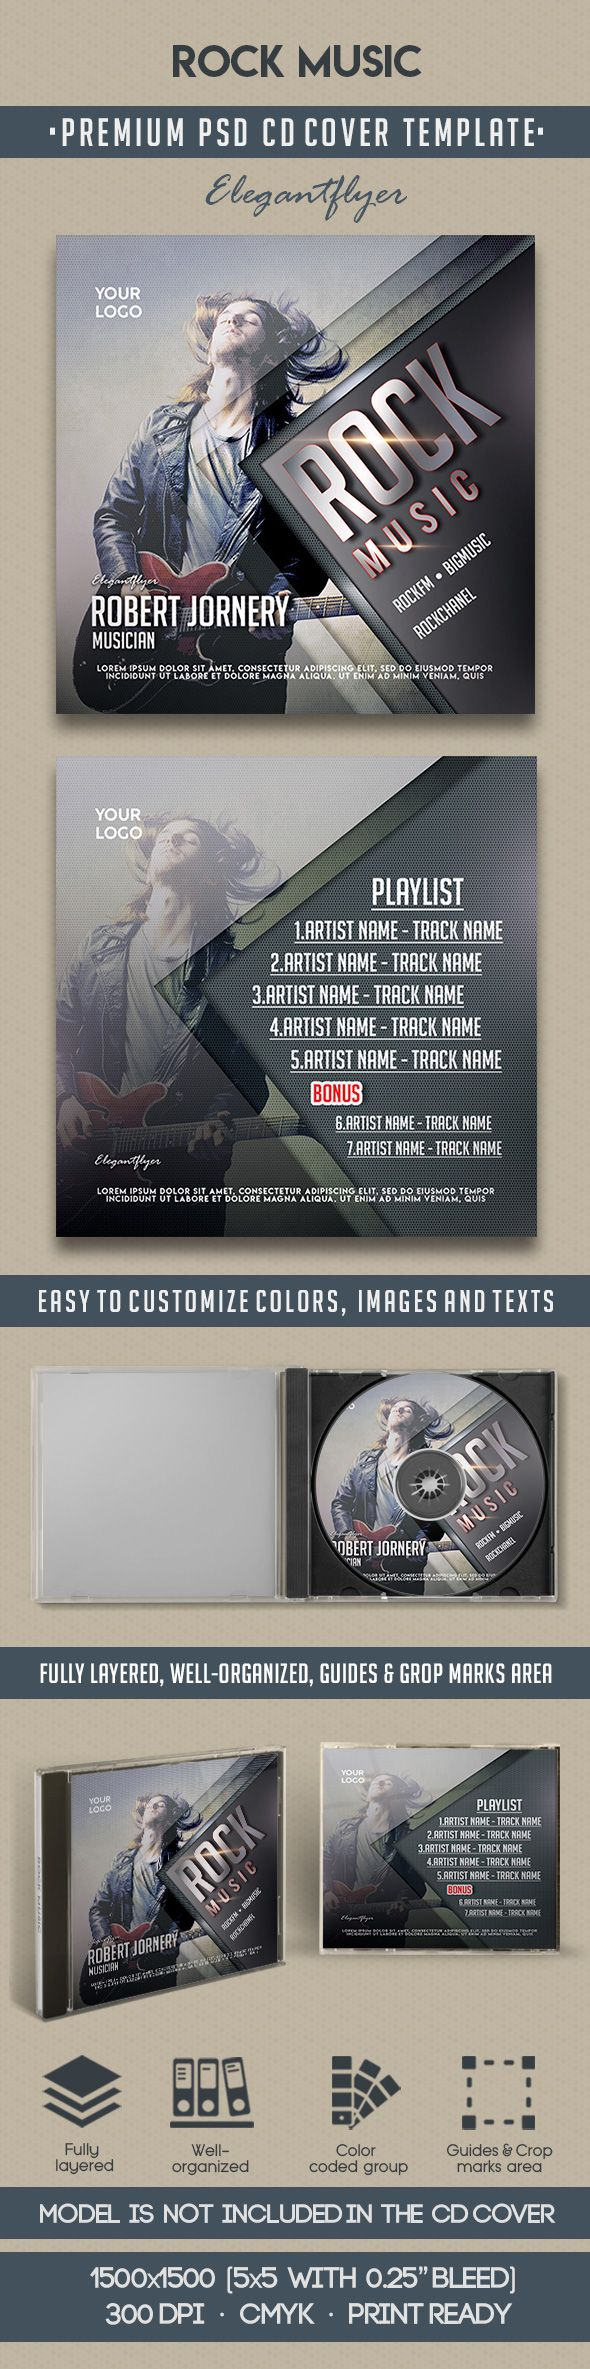 Rock Music CD Cover PSD Template